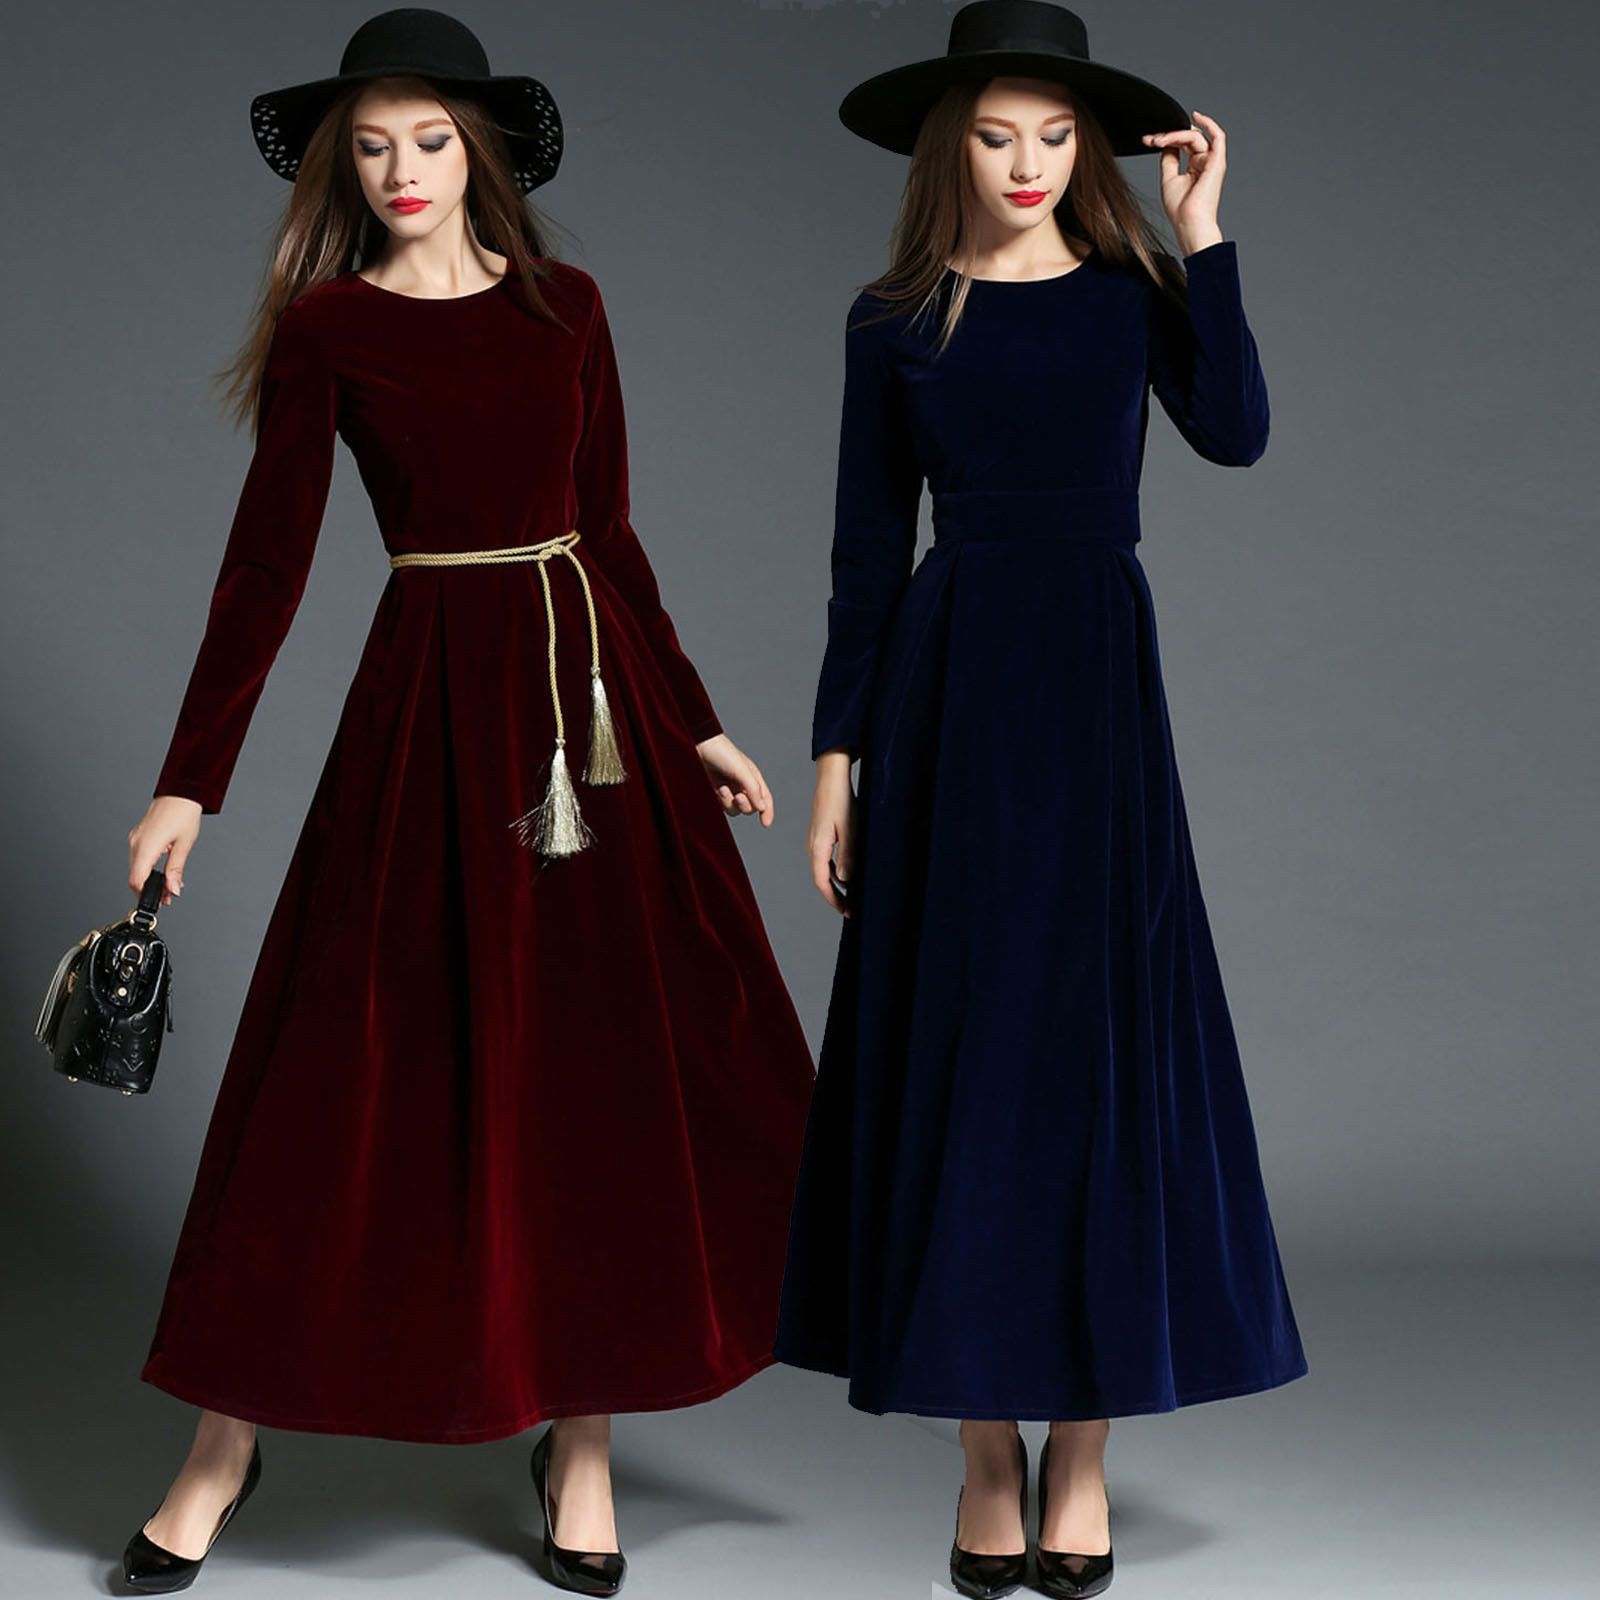 autumn winter formal retro long sleeve velvet evening party